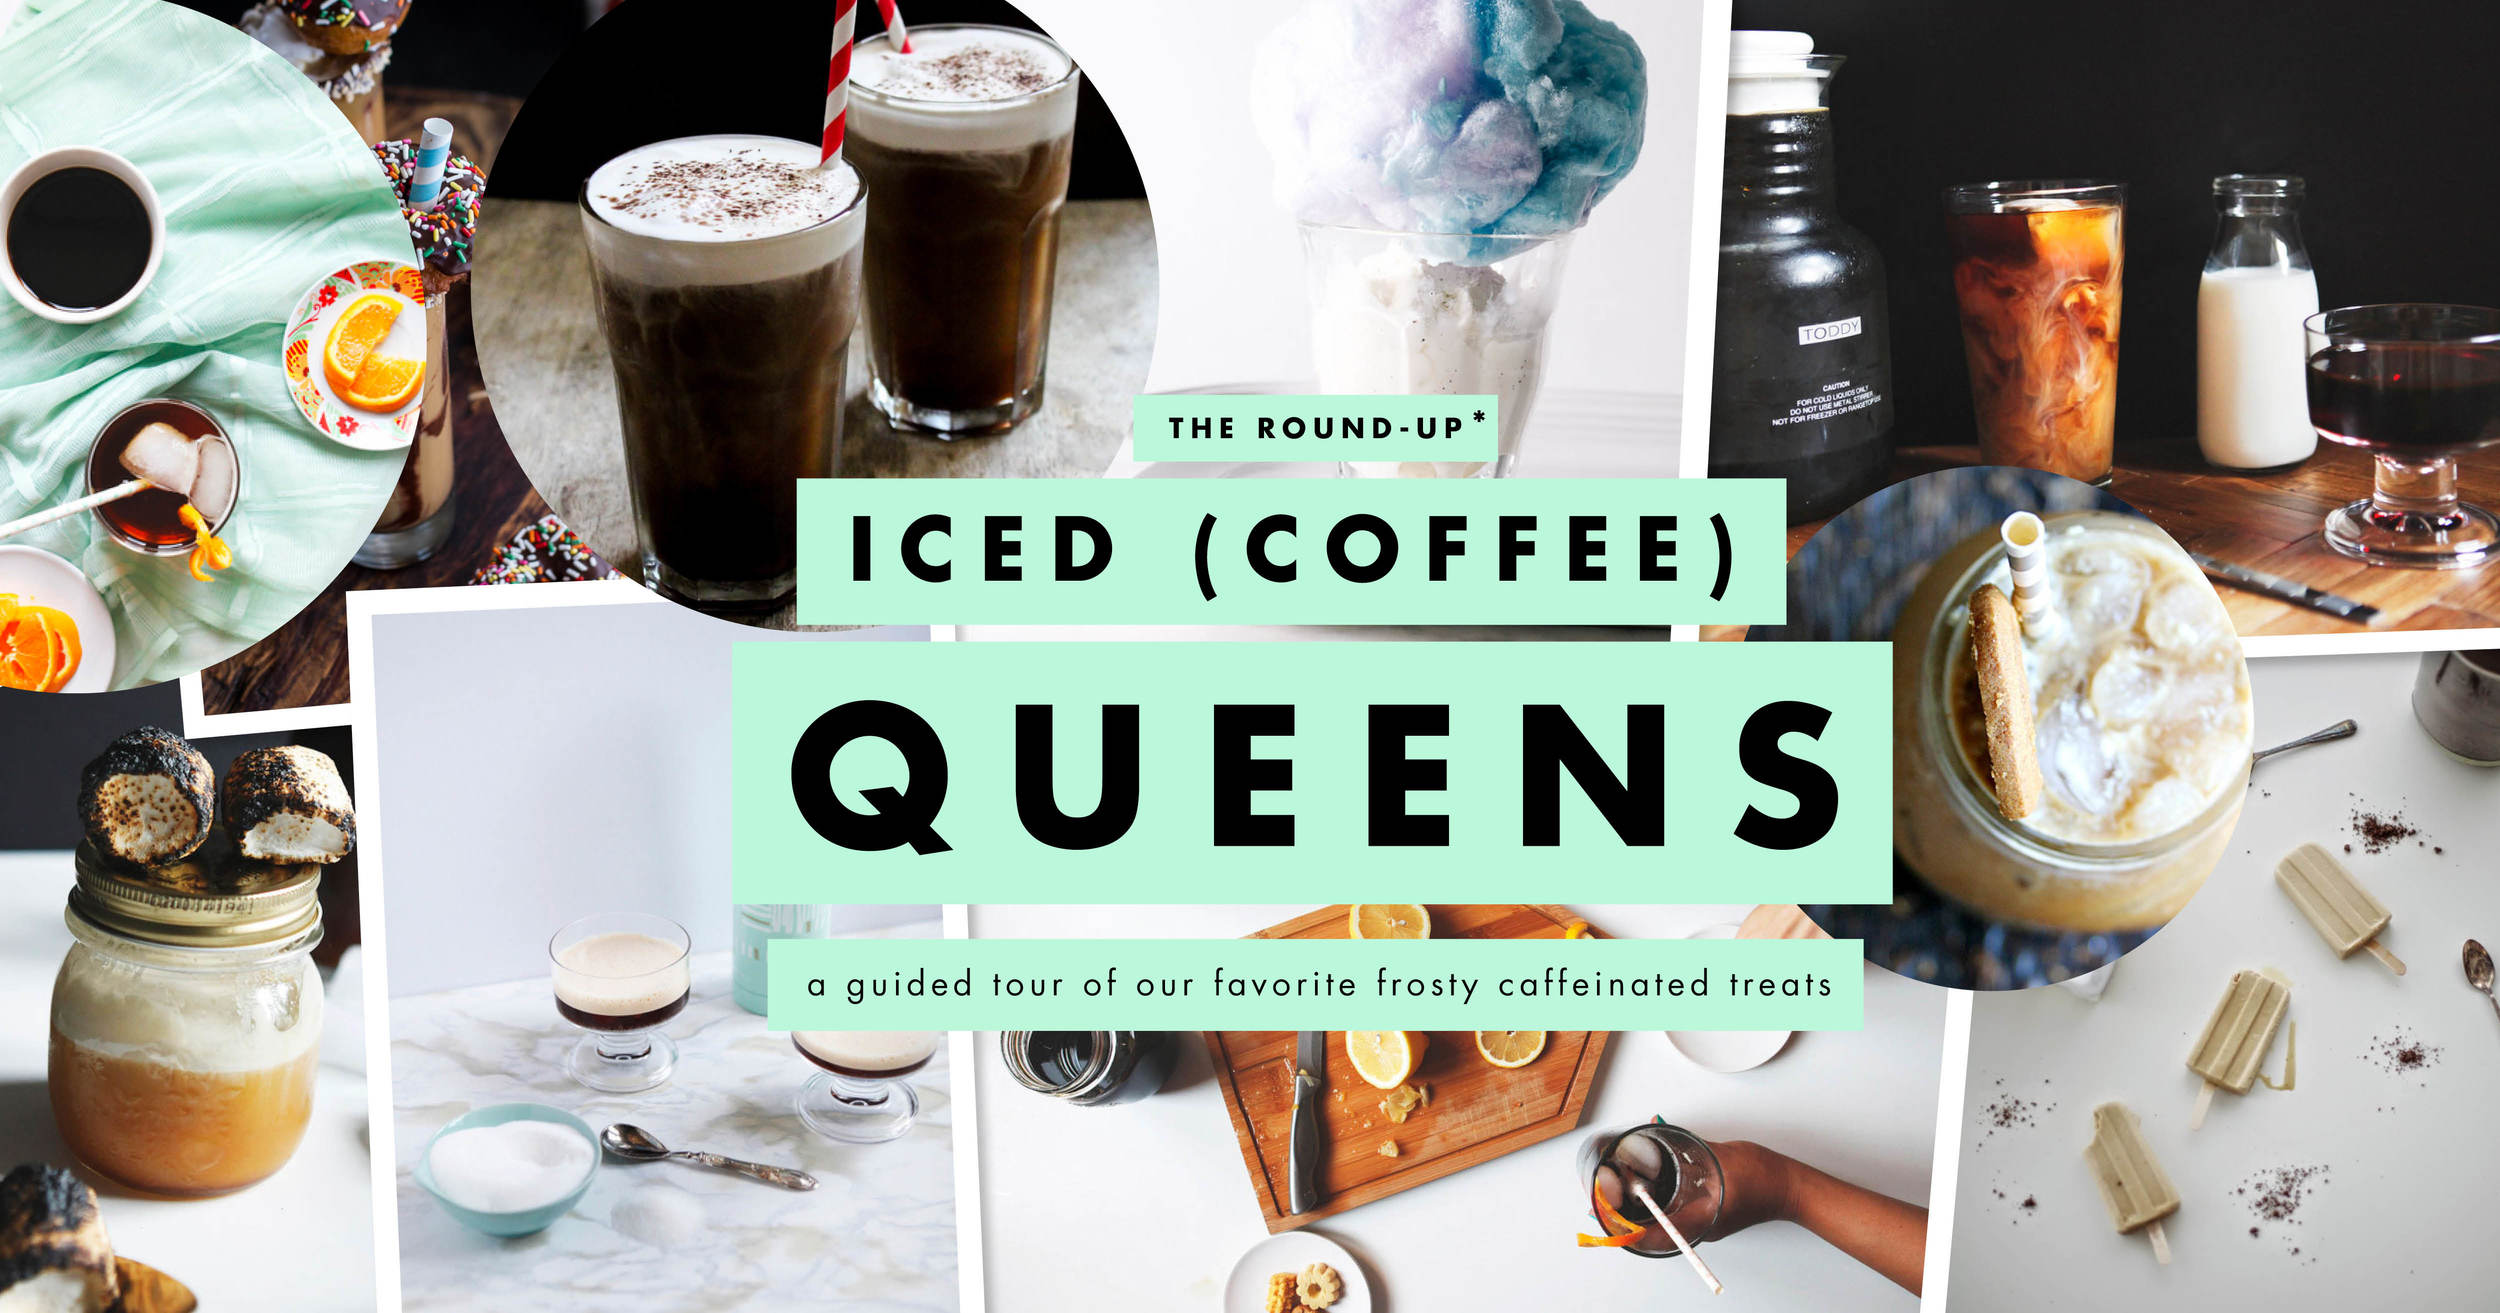 The Round-up: Iced (Coffee) Queens | Freckle & Fair